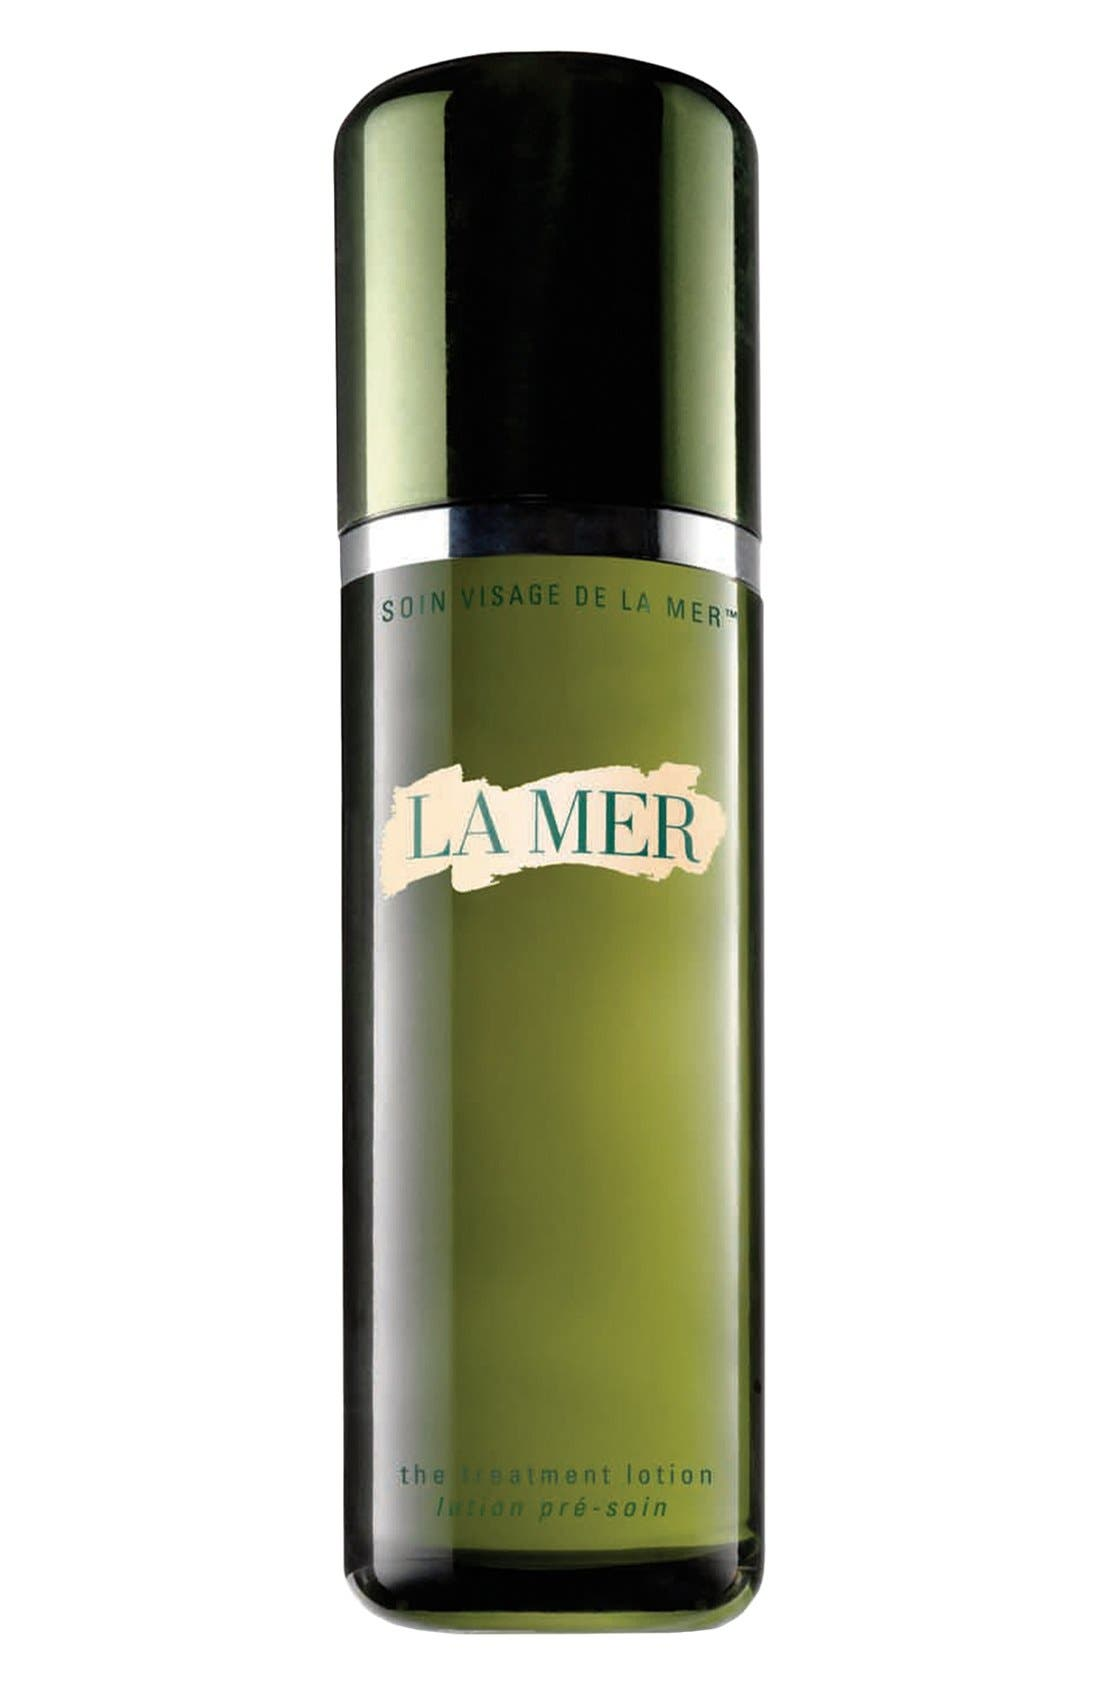 La Mer 'The Treatment Lotion'